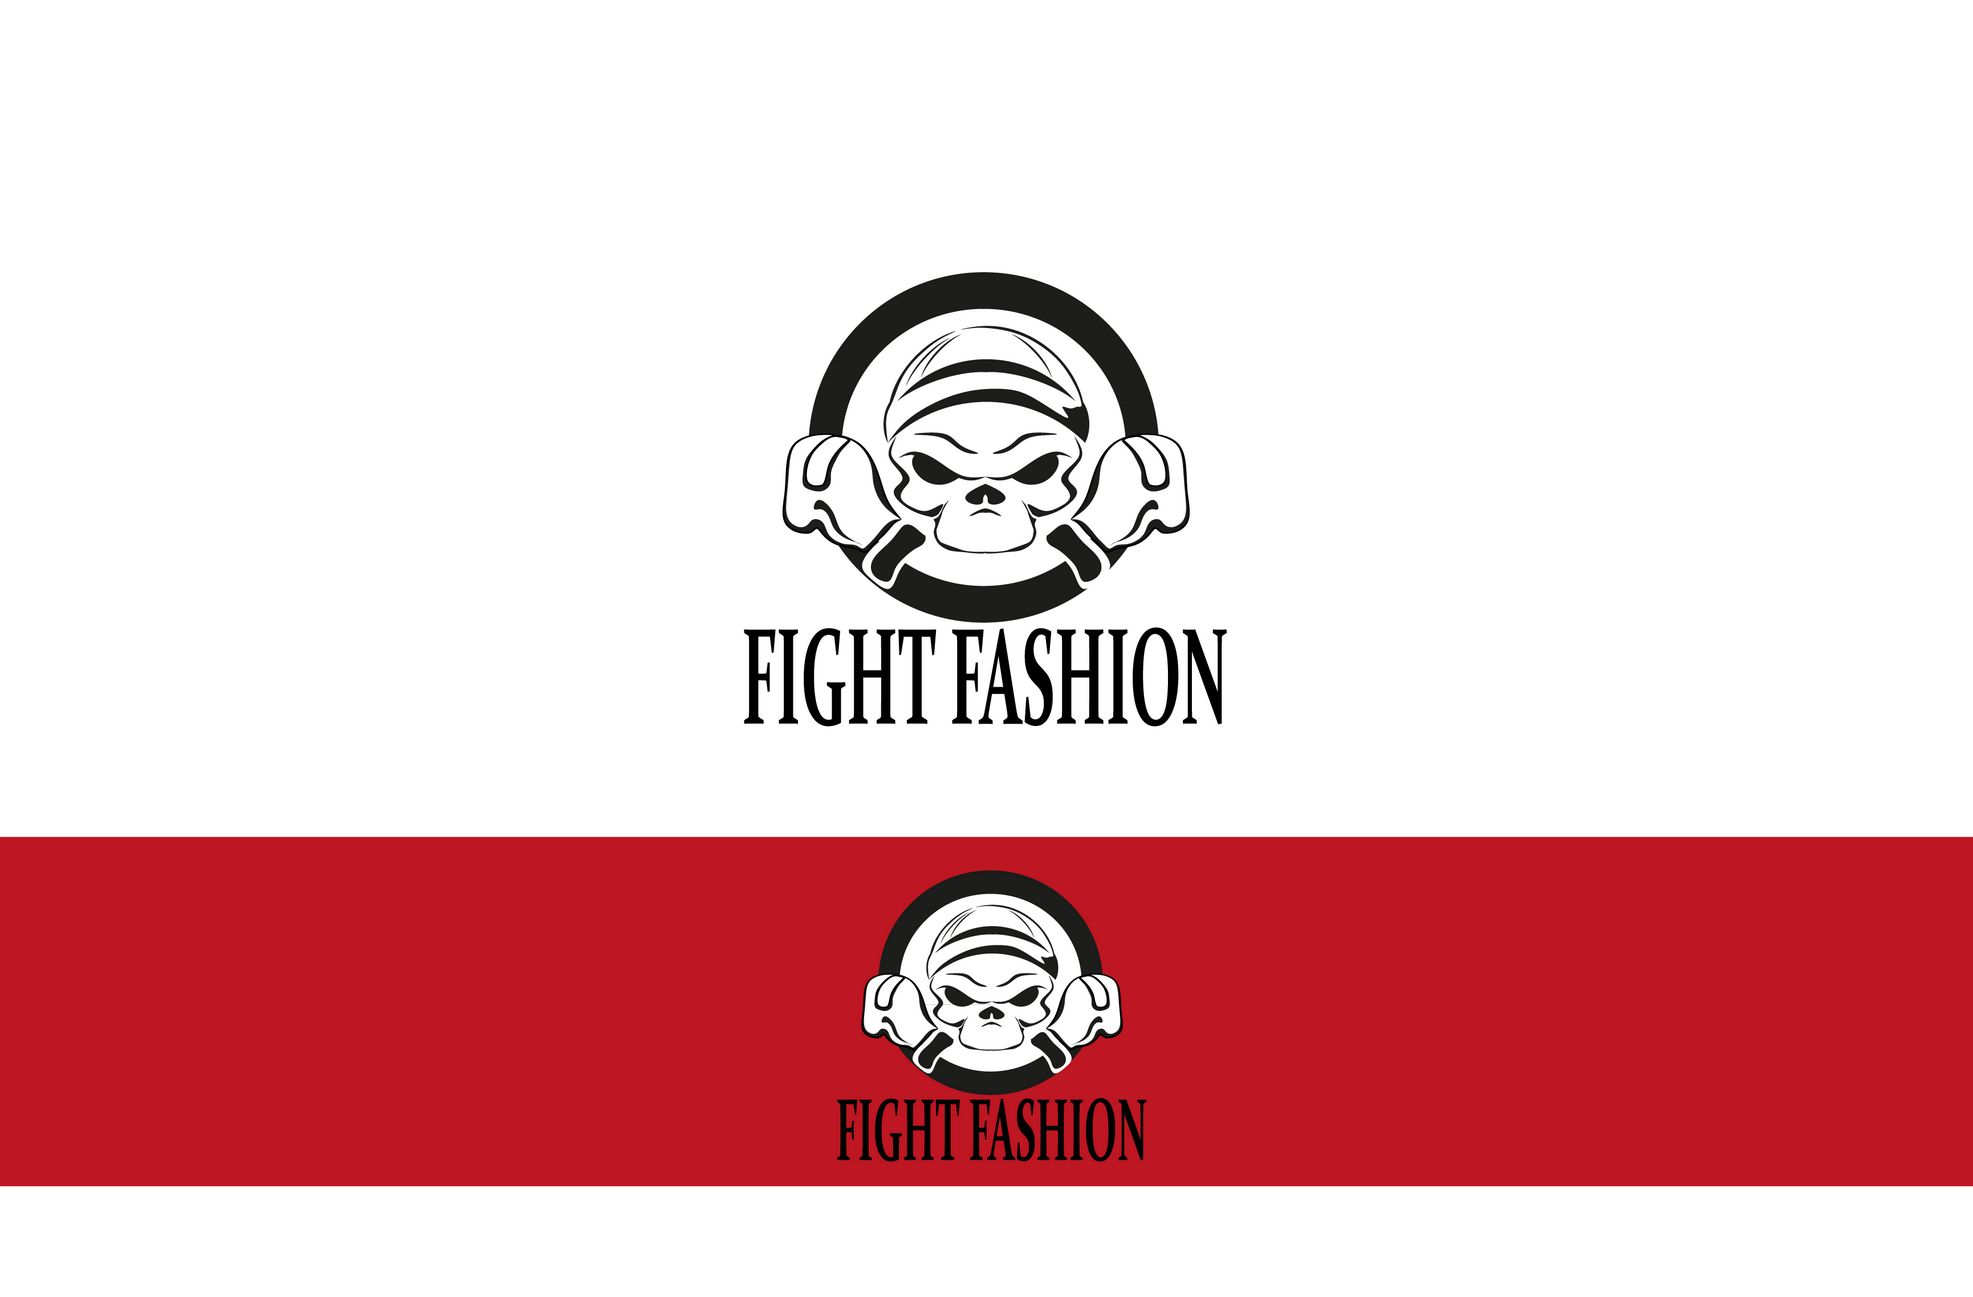 Логотип для Fight Fashion - дизайнер kirilln84